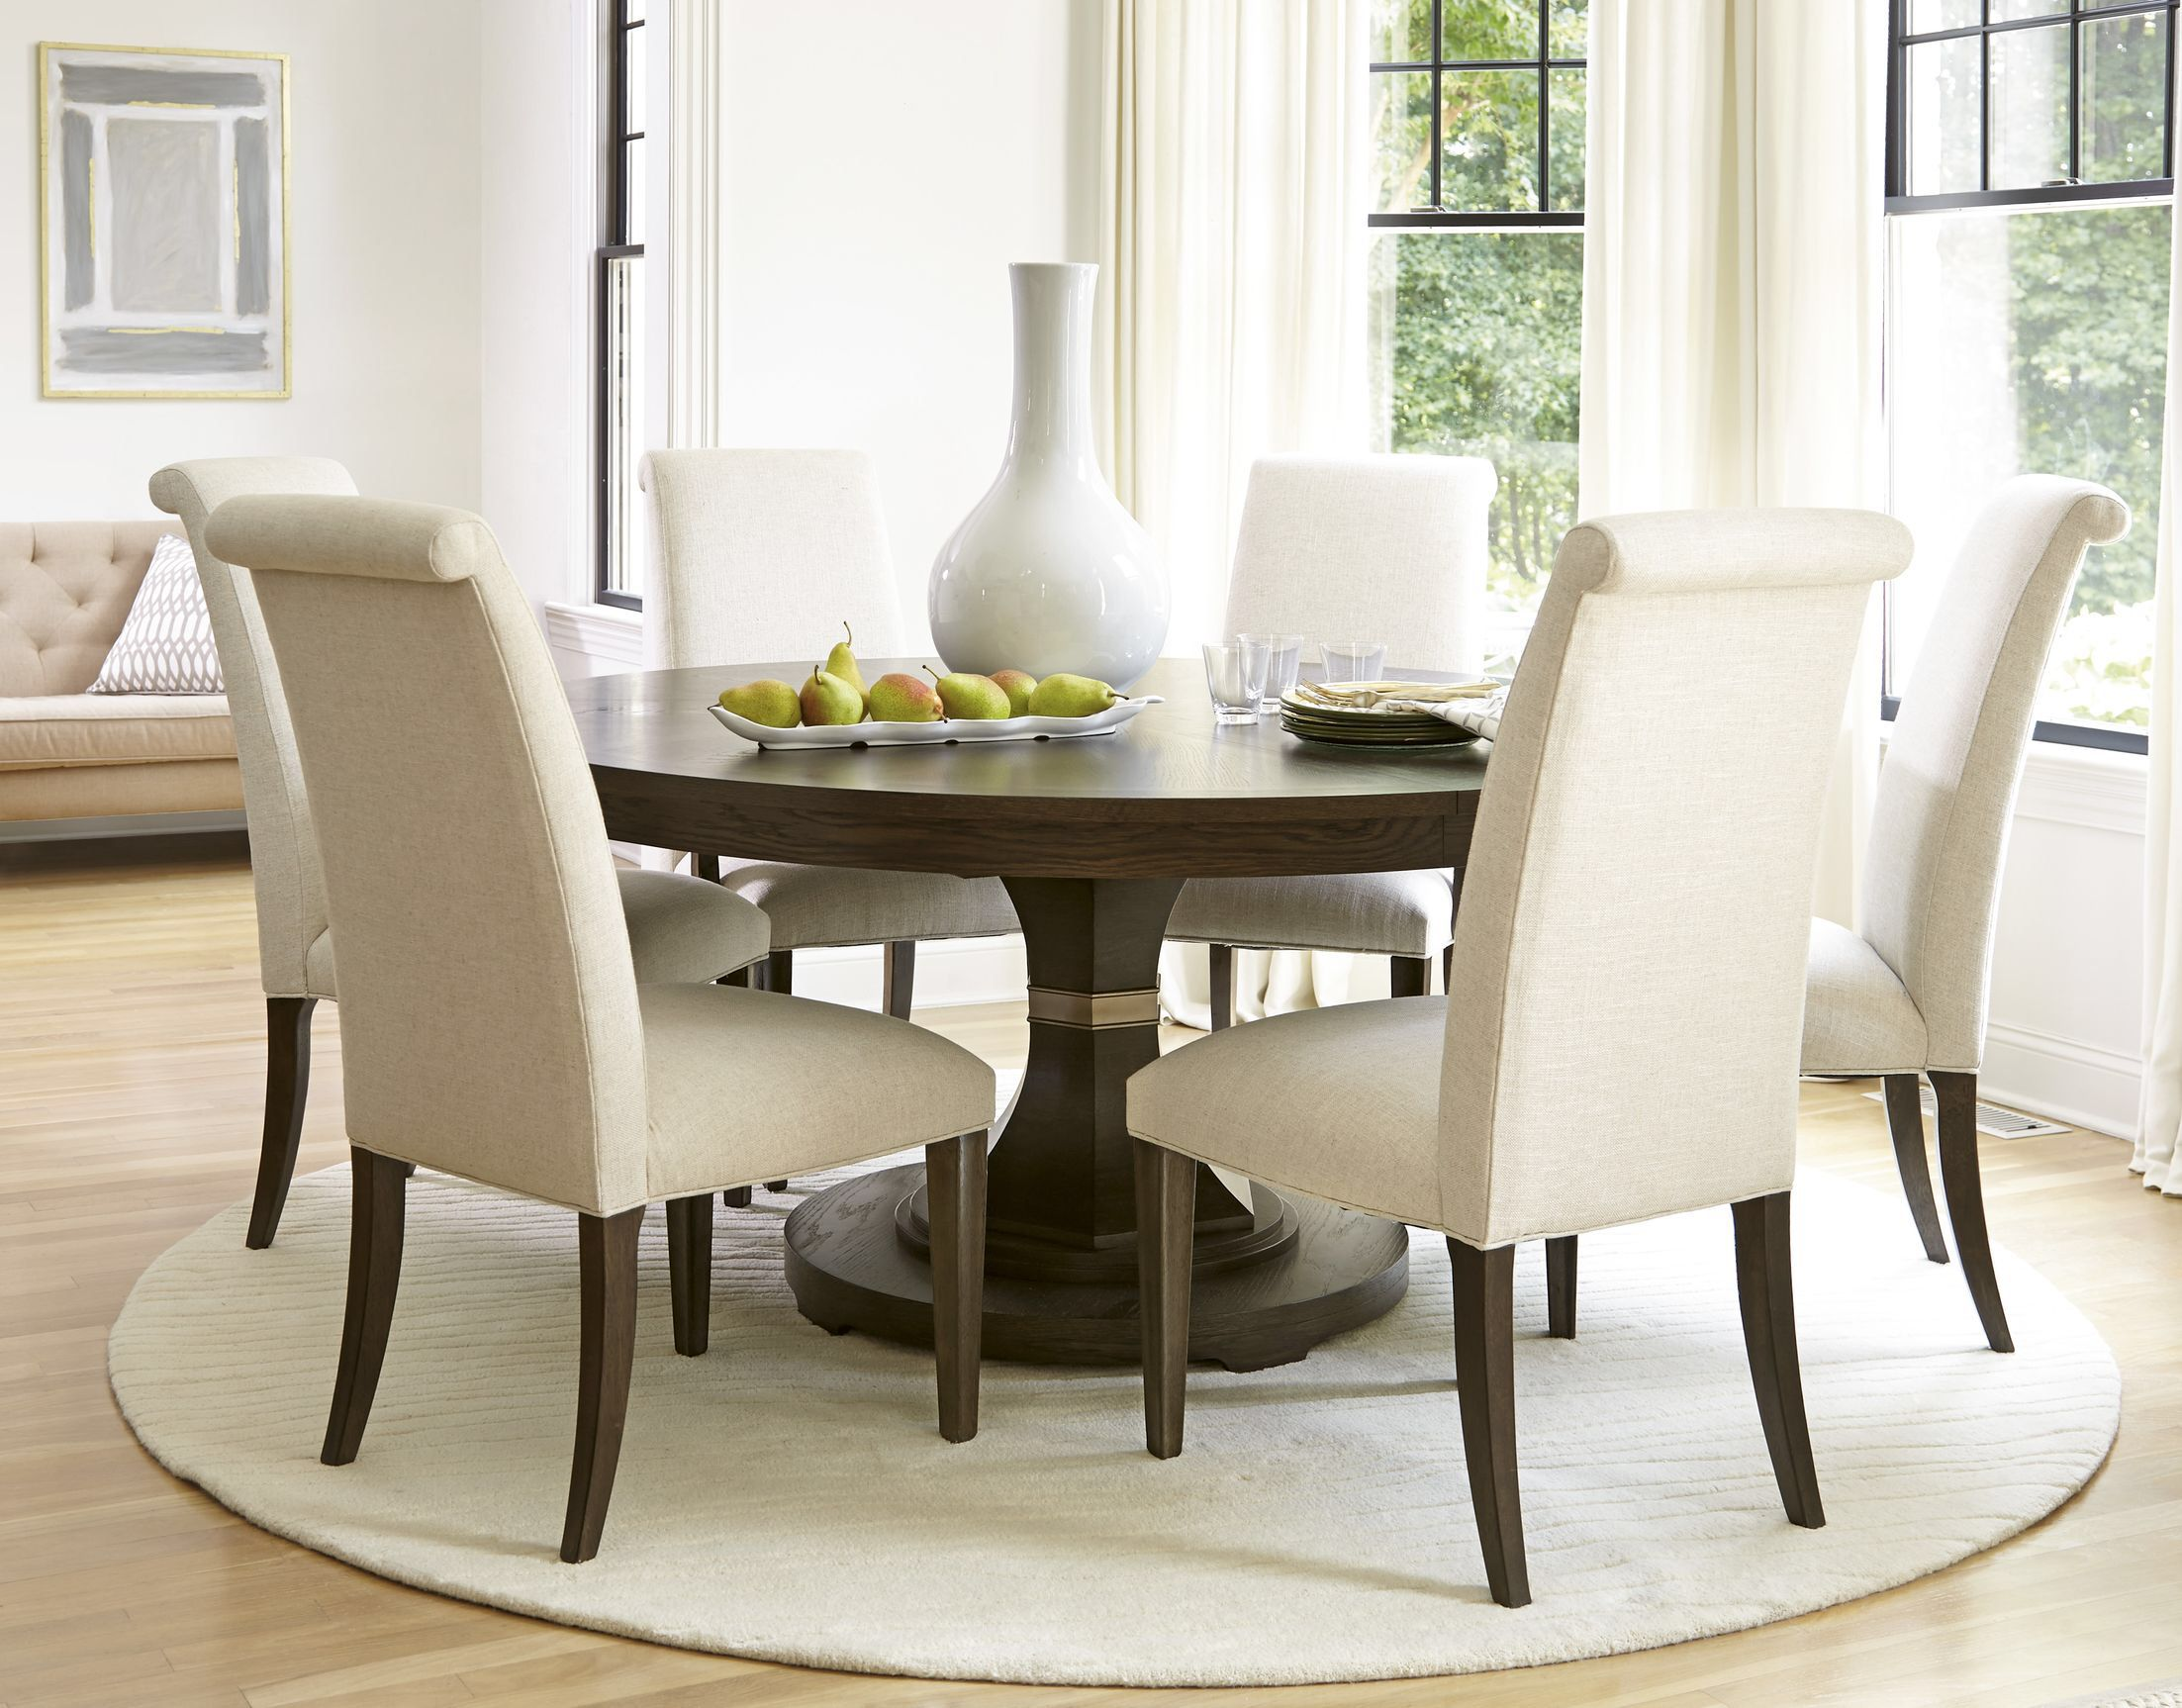 California Extendable 7 Piece Dining Set Round Dining Room Sets